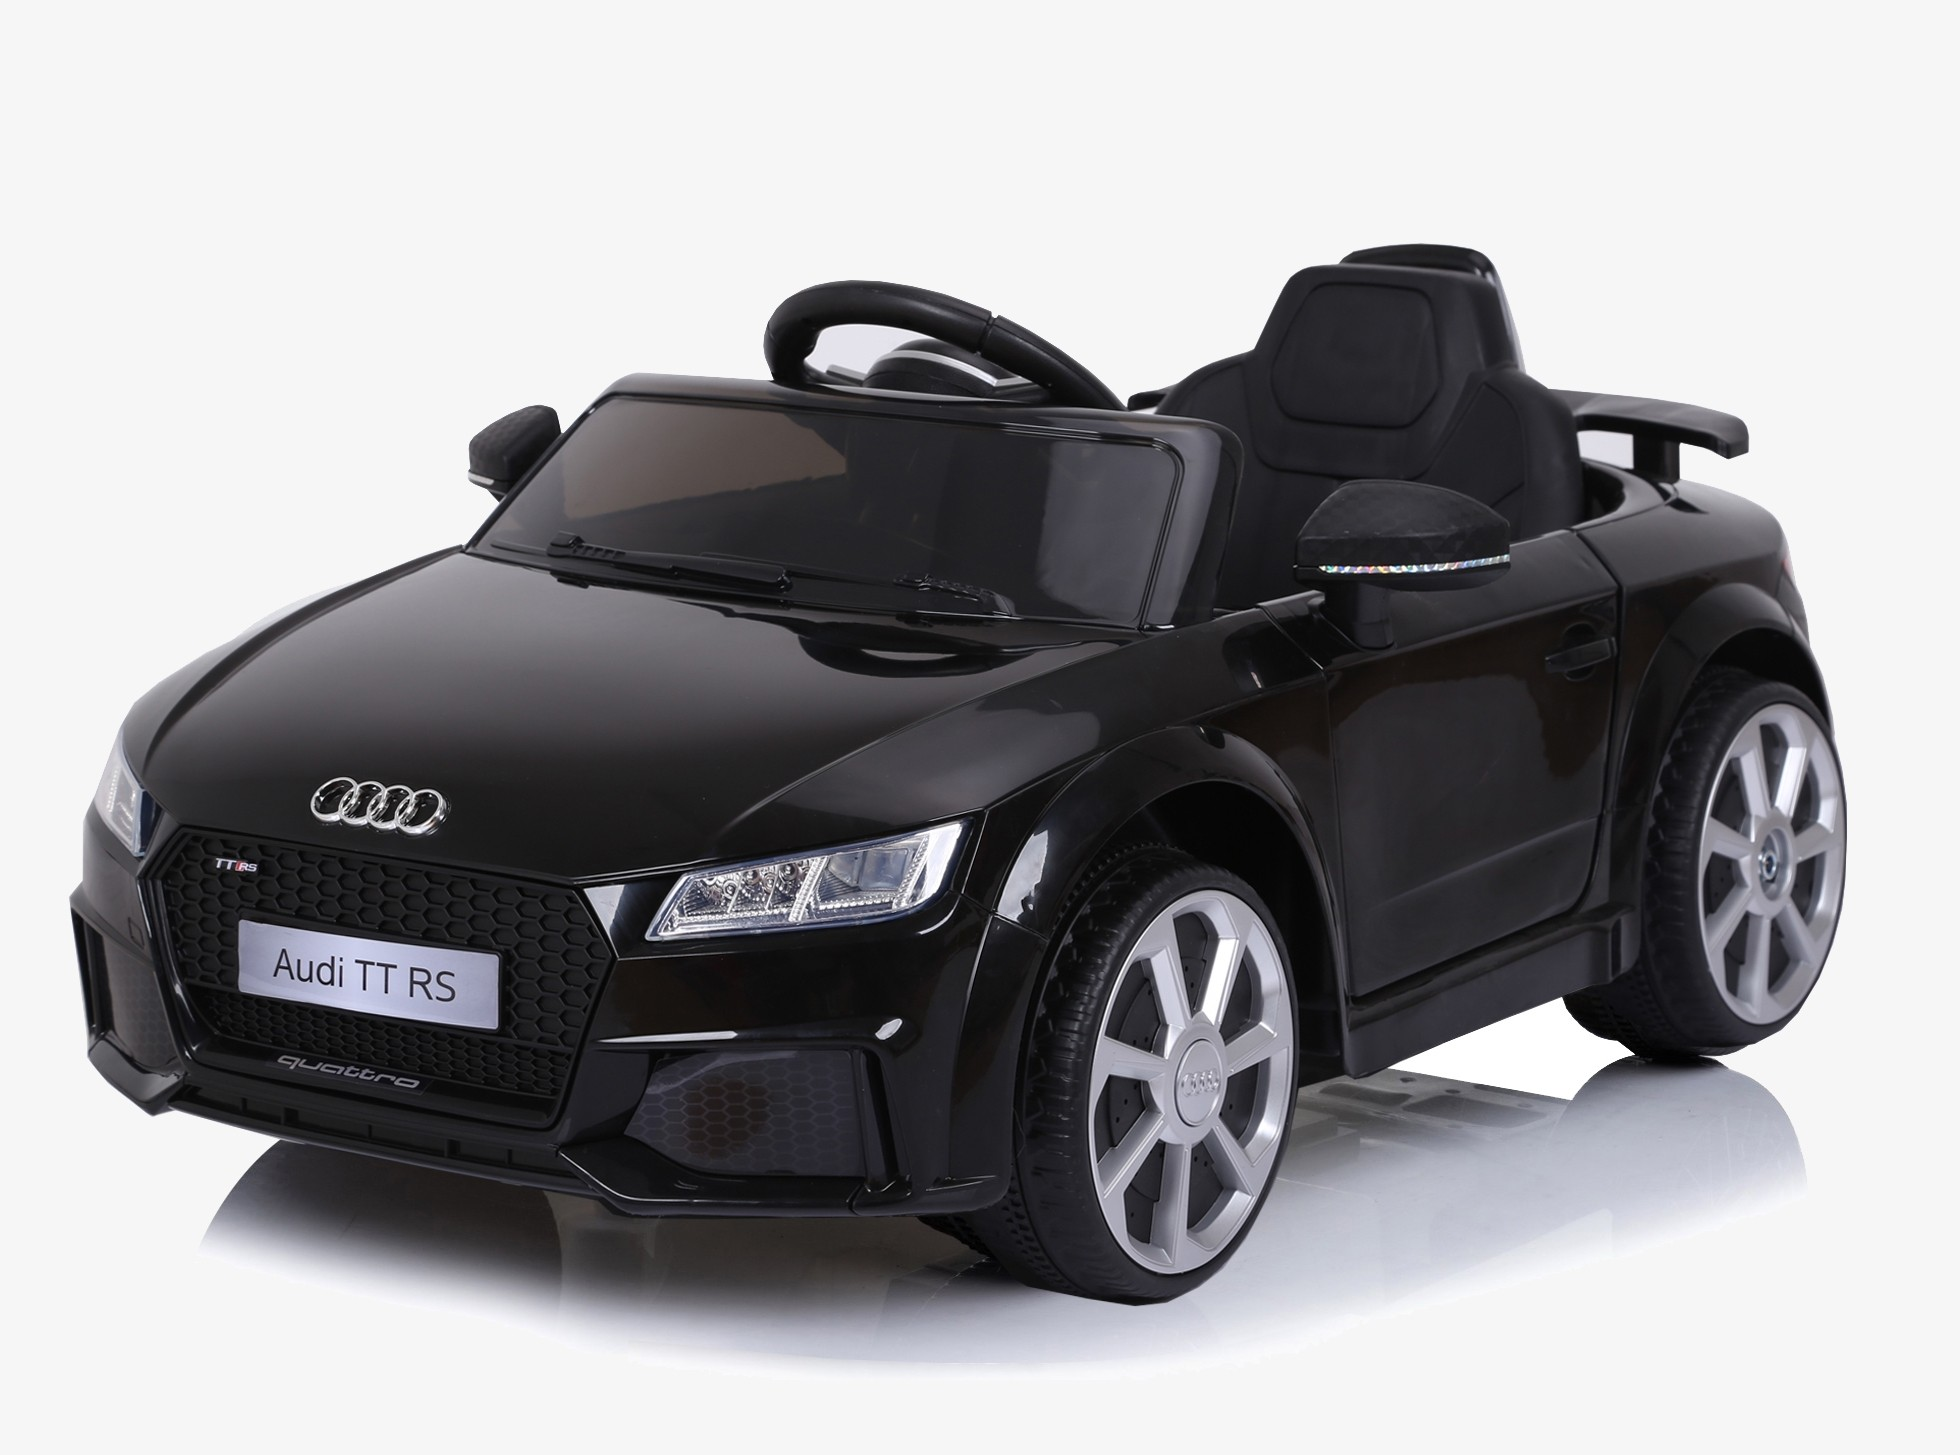 Xtreme 12v Official Licensed Audi TT RS Ride on Car in Black